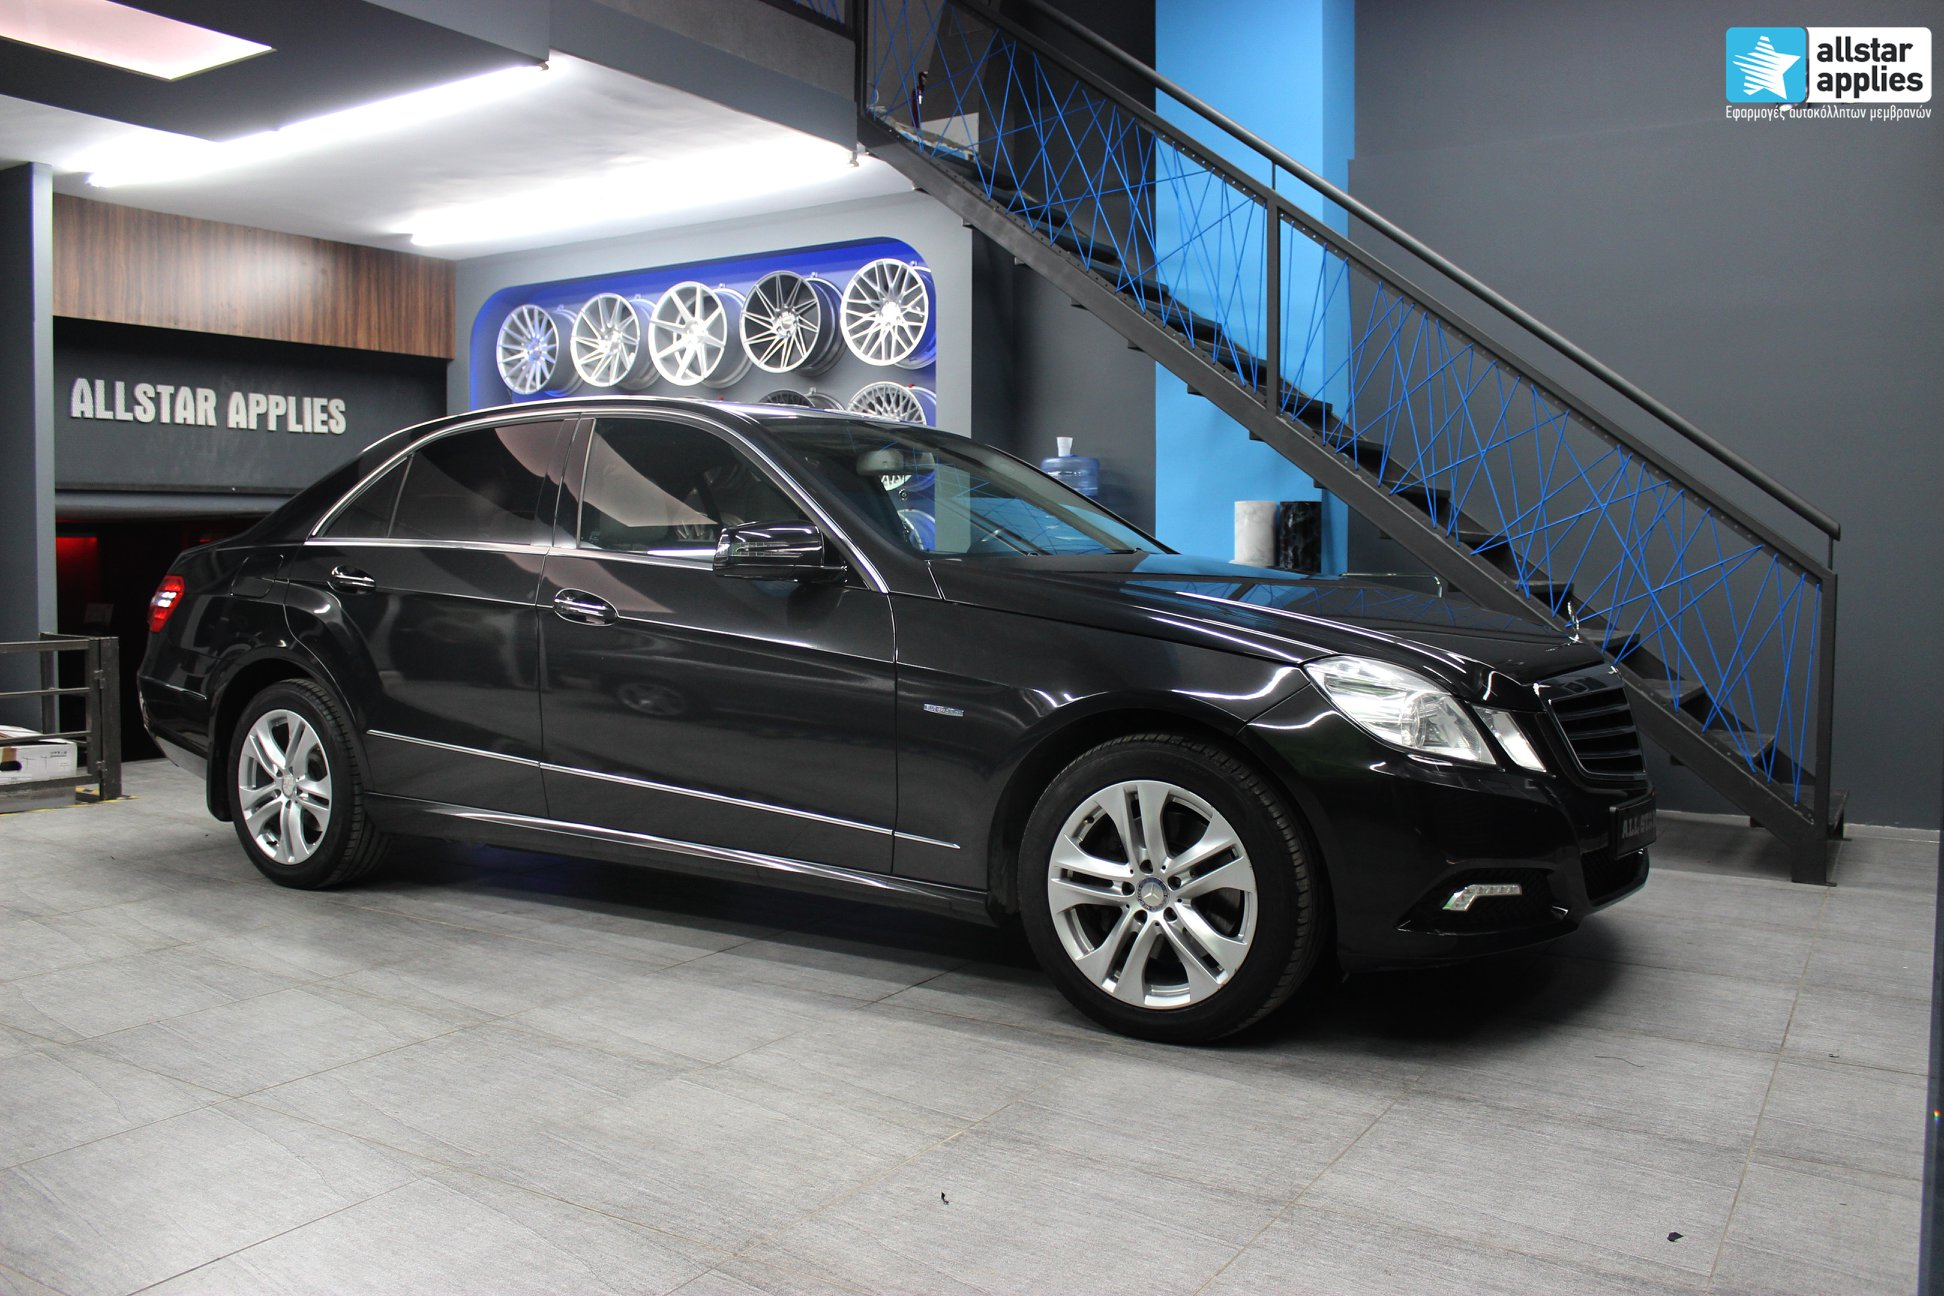 Mercedes E250 - Black Metallic (1)